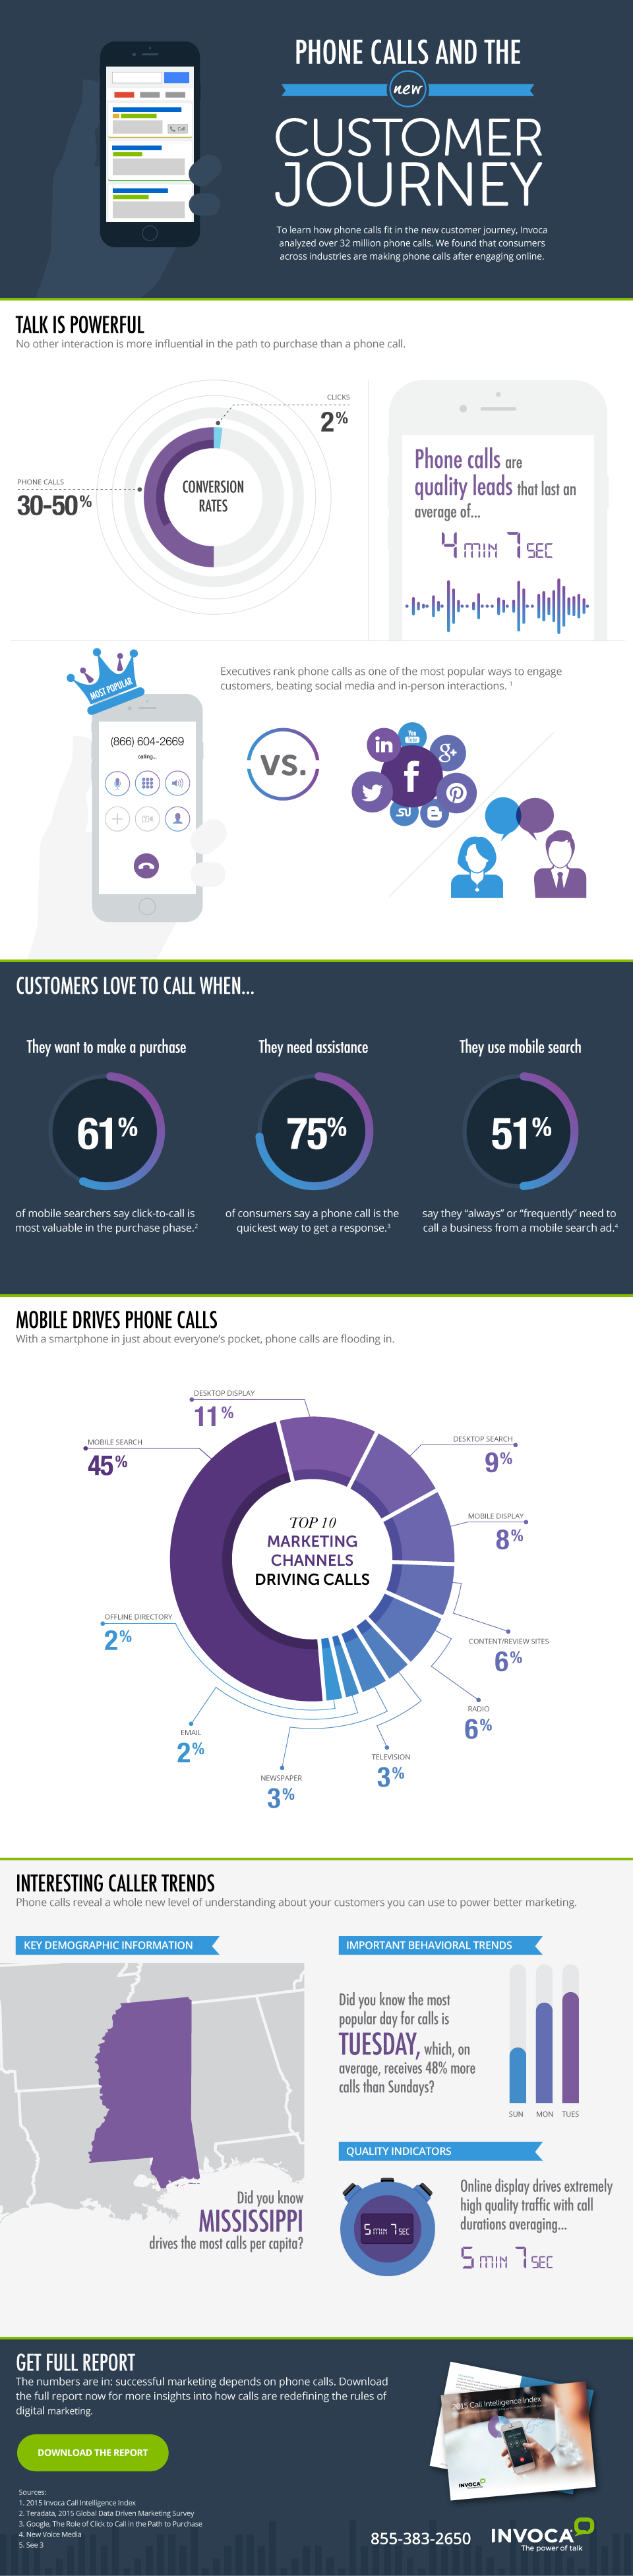 Phone Calls and the New Customer Journey #infographic